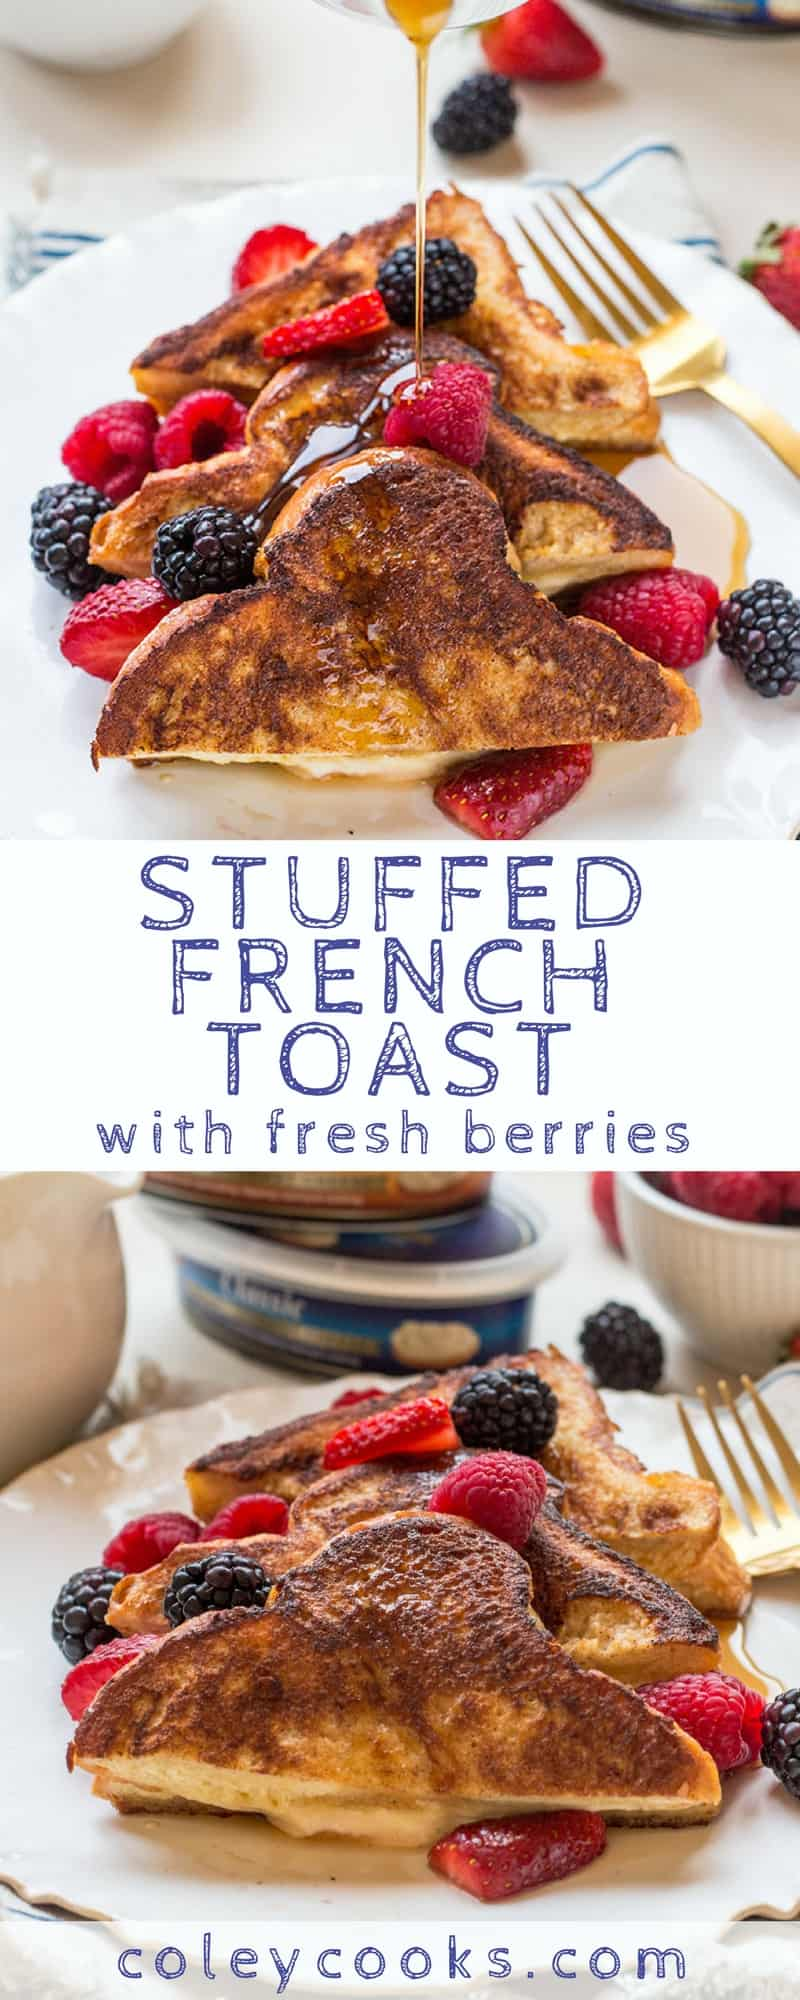 STUFFED FRENCH TOAST   Easy + delicious cream cheese stuffed French toast recipe served with fresh berries and pure maple syrup. The best breakfast or brunch!   ColeyCooks.com